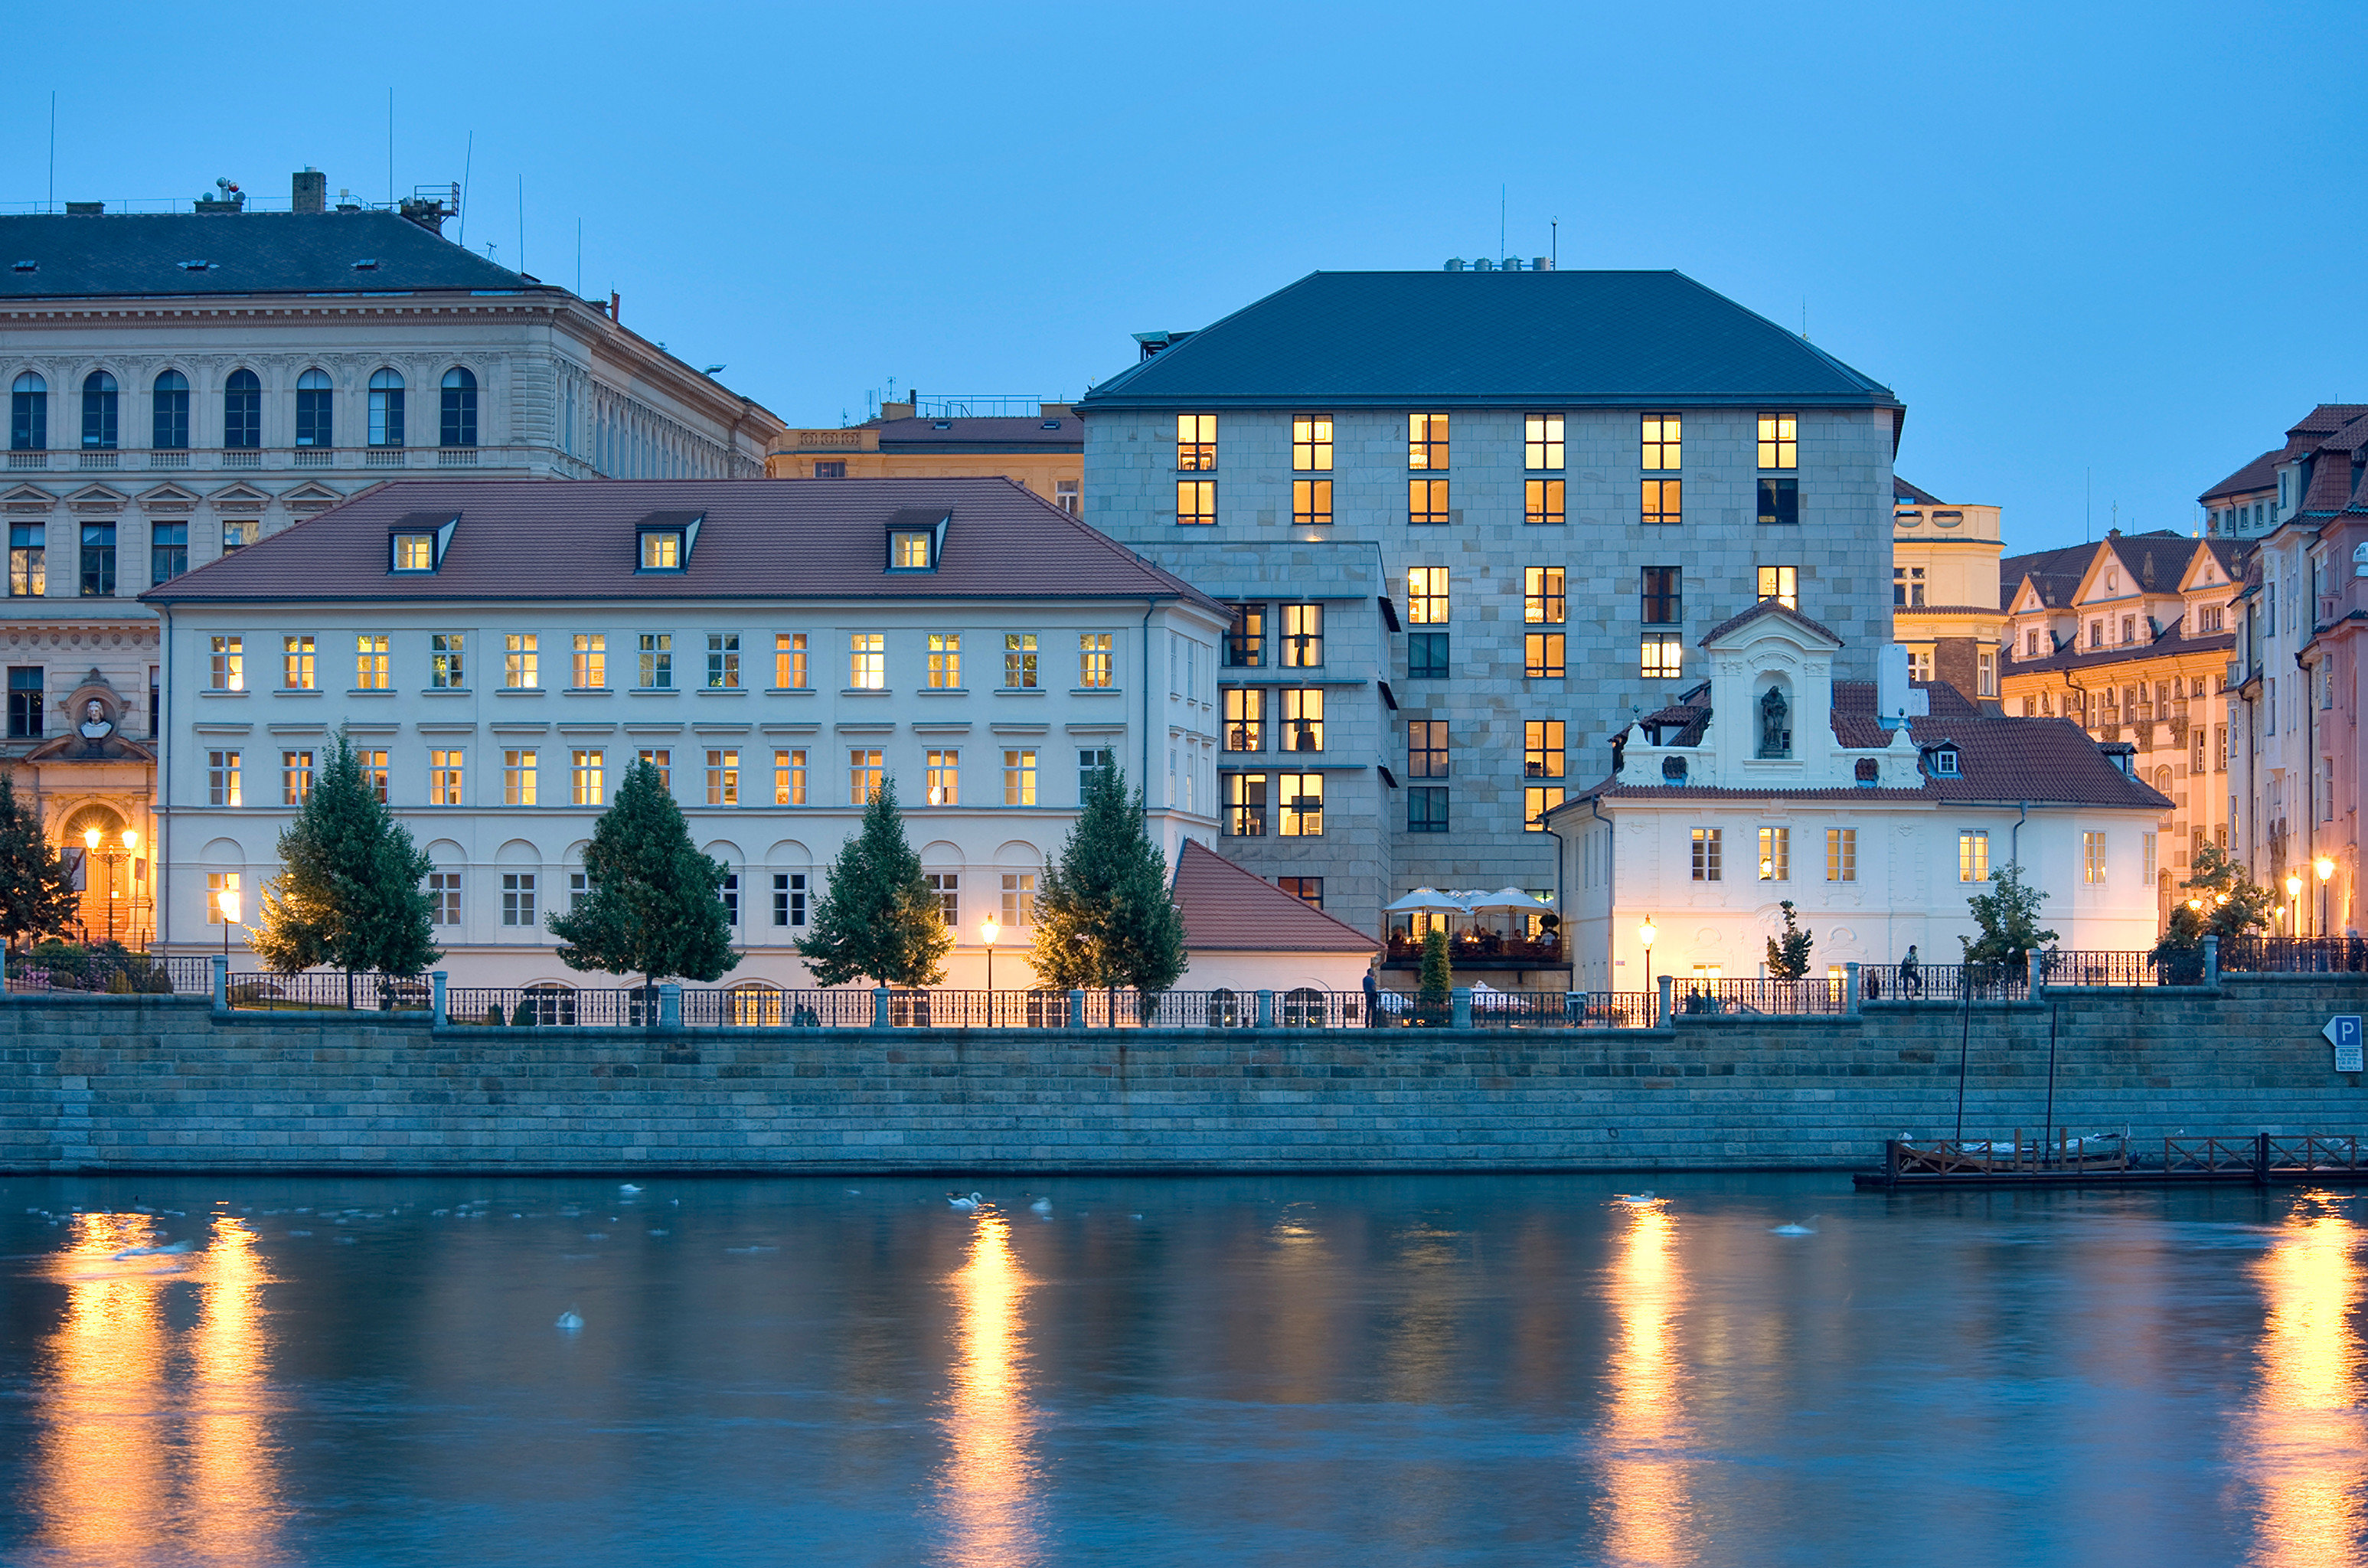 Architecture Buildings Cultural Exterior Landmarks Outdoors water sky building Town landmark cityscape house River evening Downtown dusk waterway palace castle